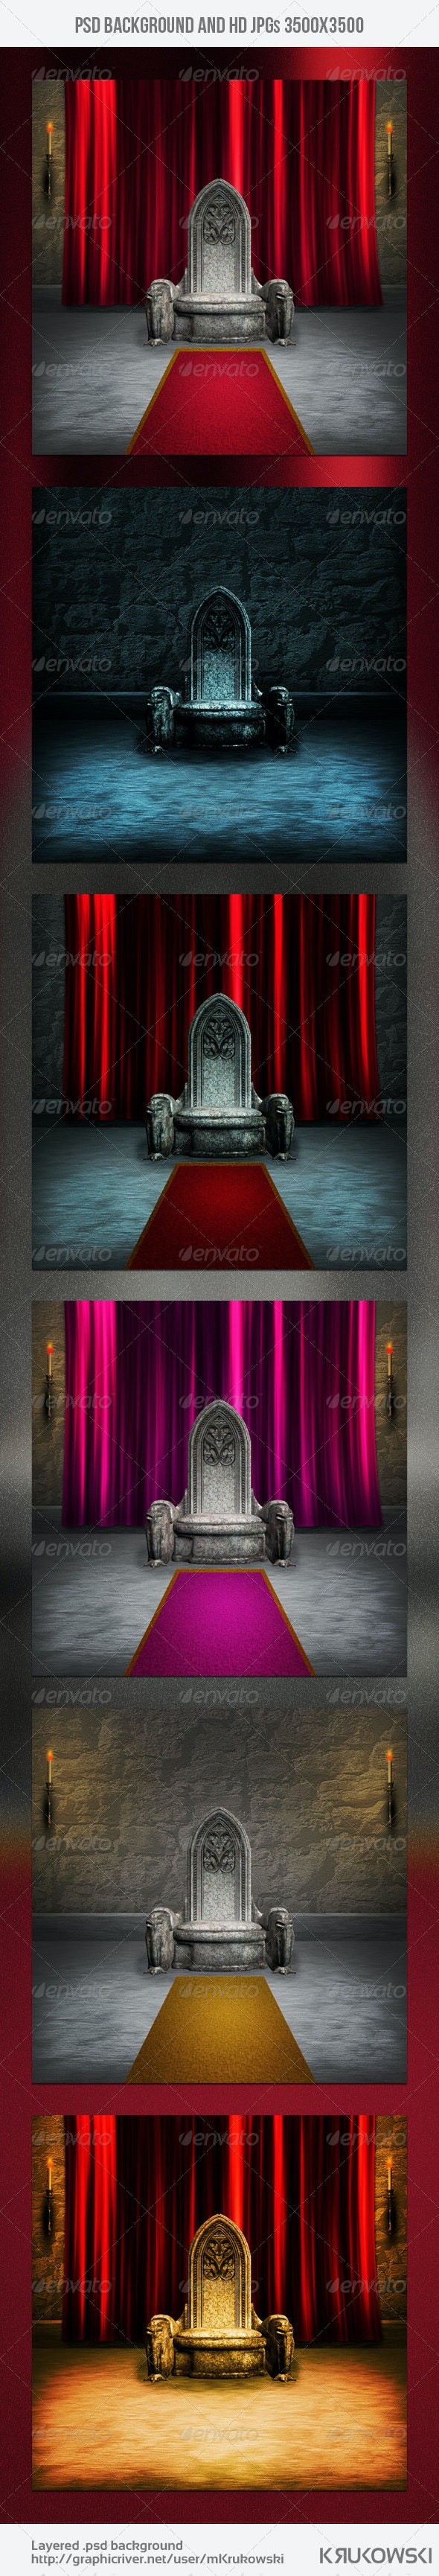 Throne Room Gothic Background - Miscellaneous Backgrounds